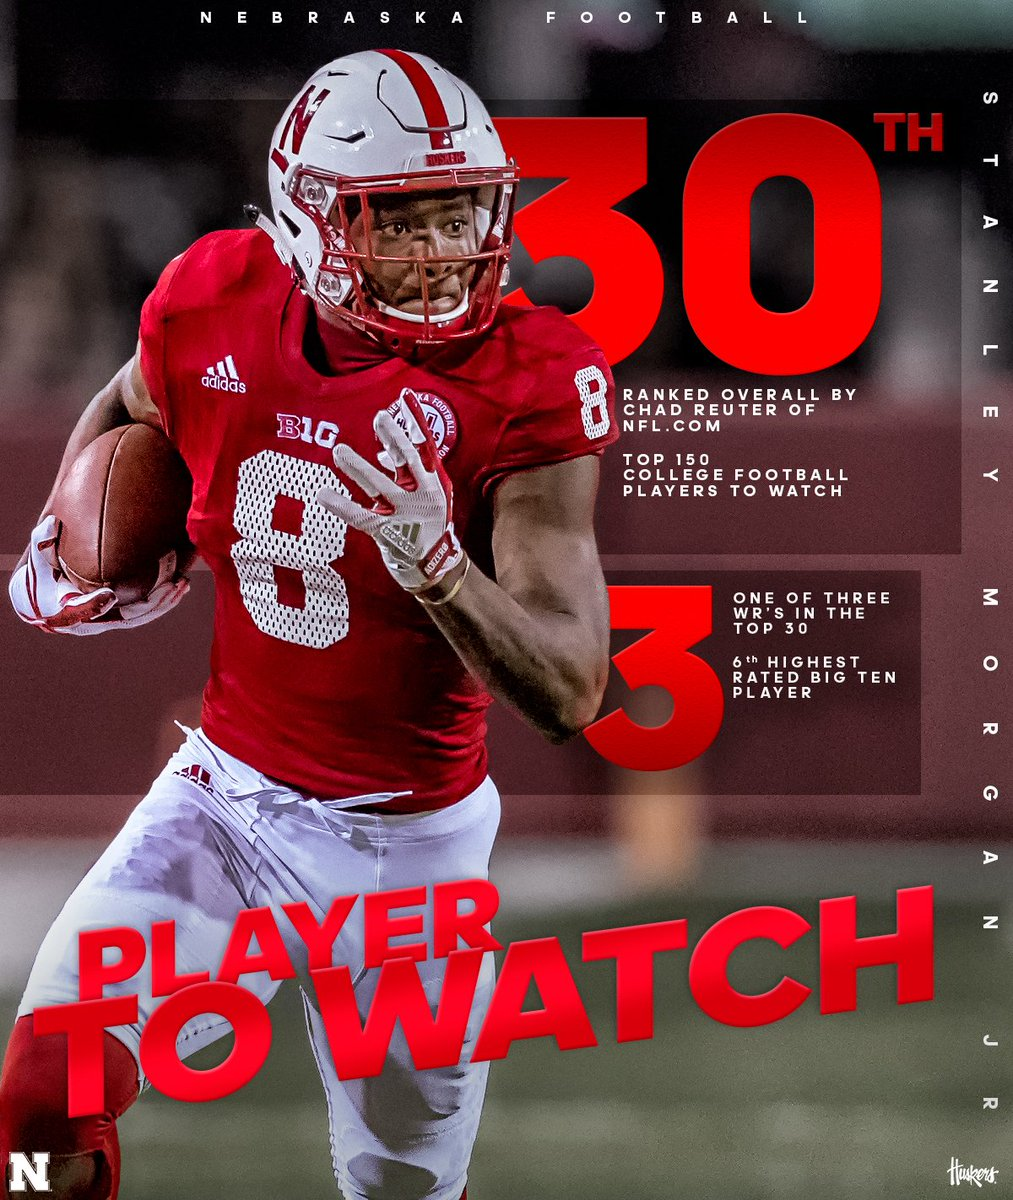 Top 150 players to watch in college football. @Thekidstan coming in at 3️⃣0️⃣. ✊ #GBR